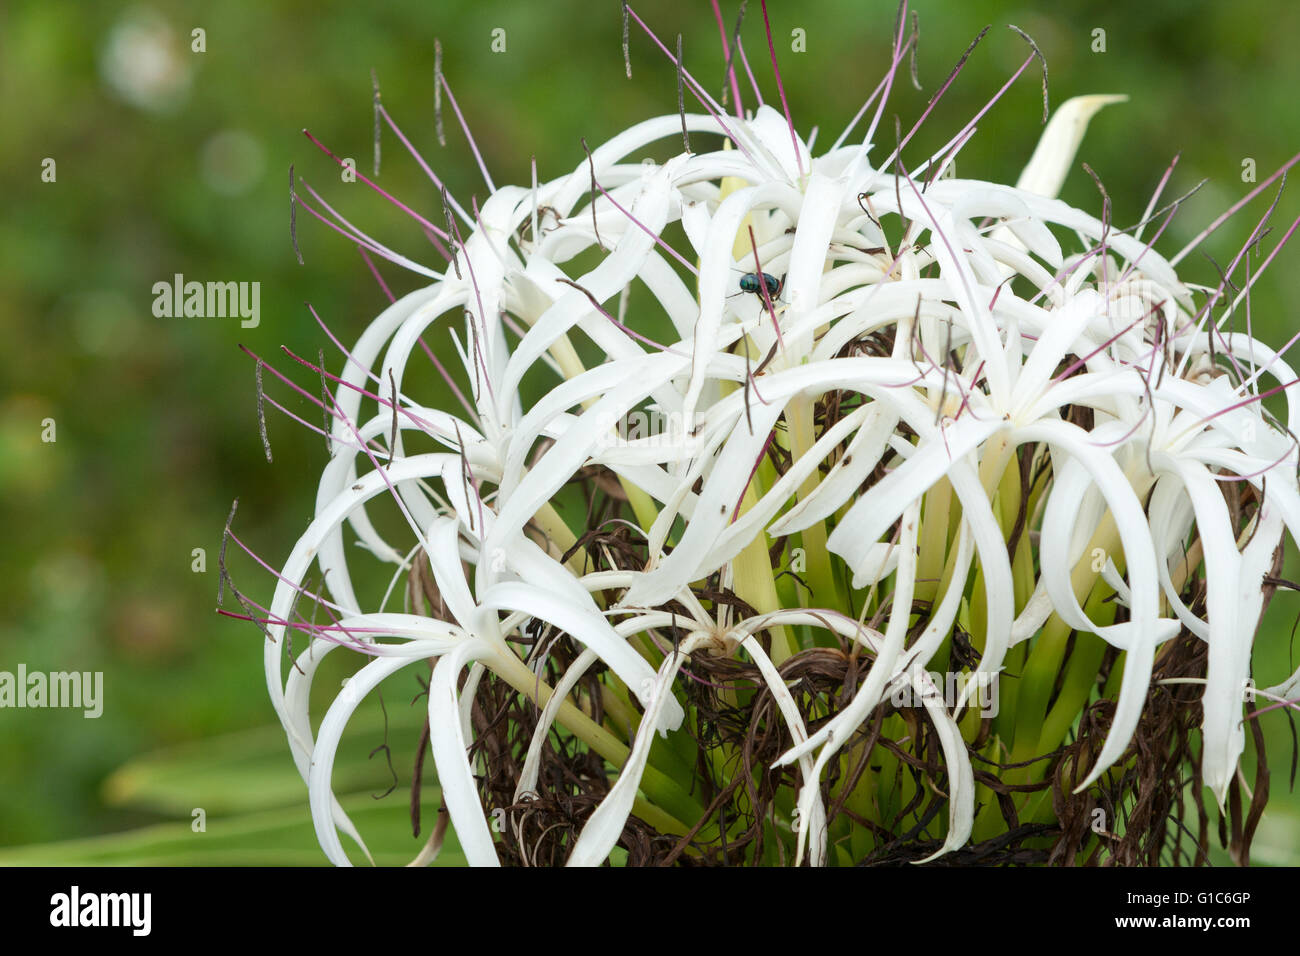 Poison Bulb Spider Lily Giant Crinum Lily Grand Crinum